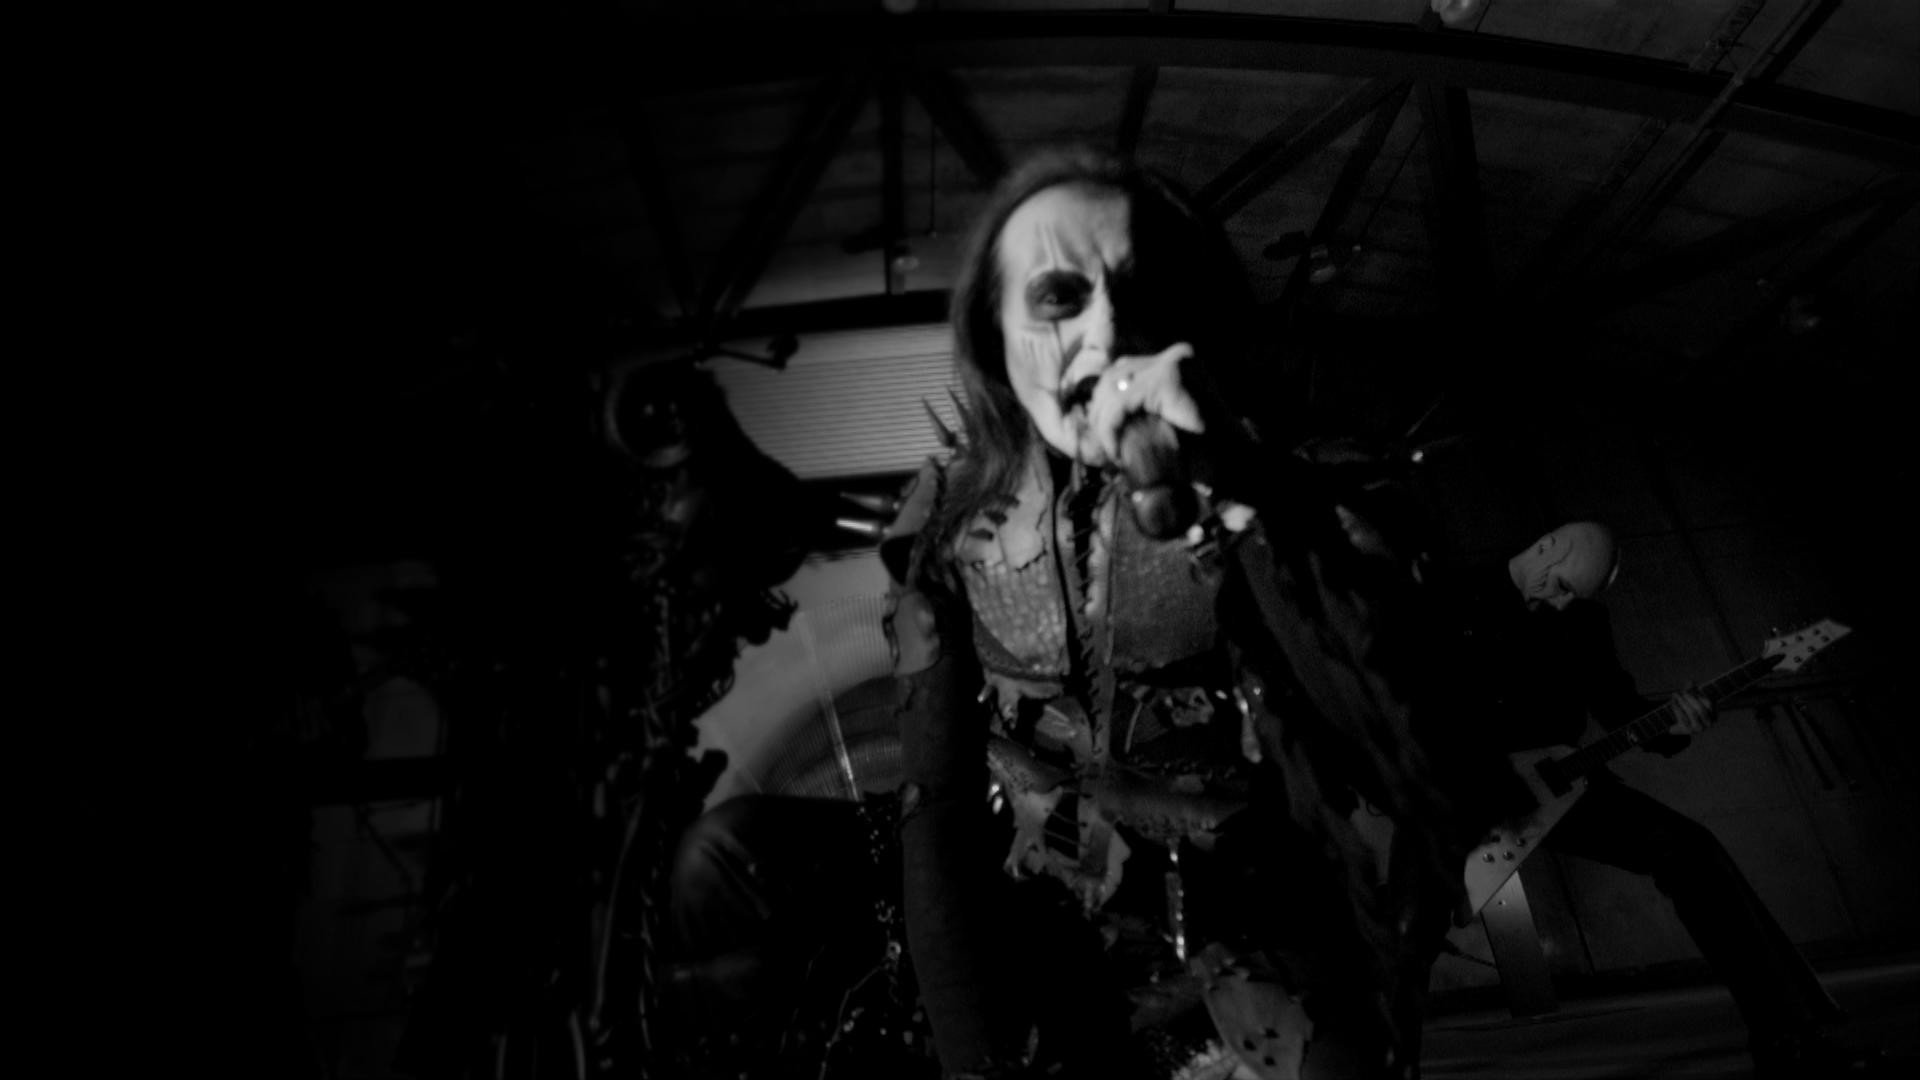 Awesome Cradle Of Filth Born In A Burial Gown Crest - Wedding and ...